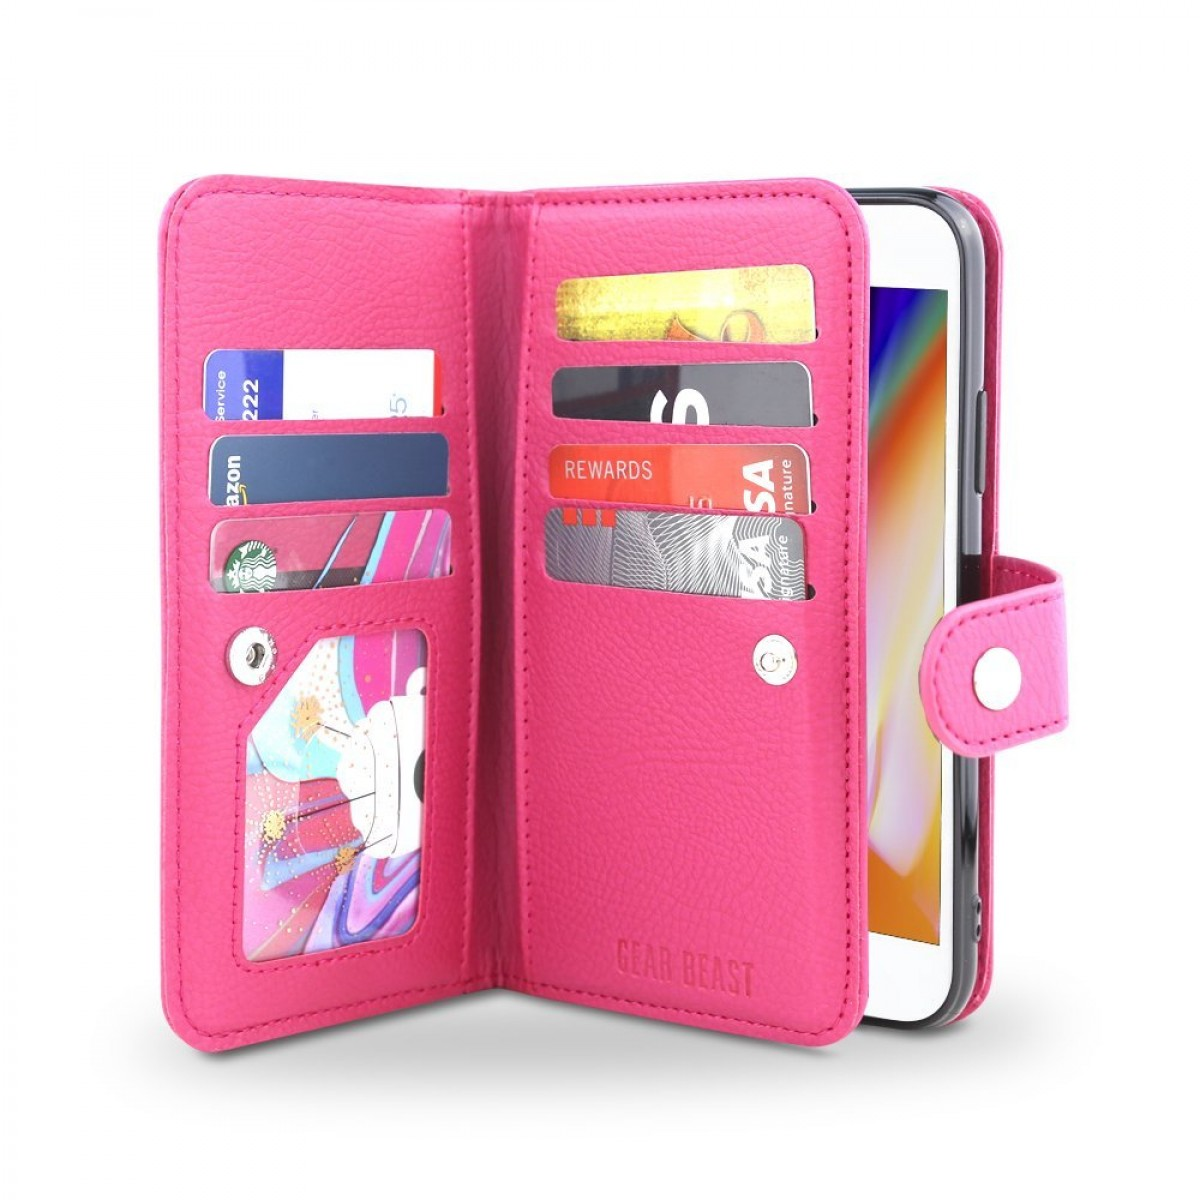 low priced 6235f c4653 Gear Beast iPhone 8 Plus / 7 Plus Wallet Case, Flip Cover Dual Folio Slim  PU Leather Case 7 Slot Card Holder Including ID Holder Plus Cash Pockets  For ...